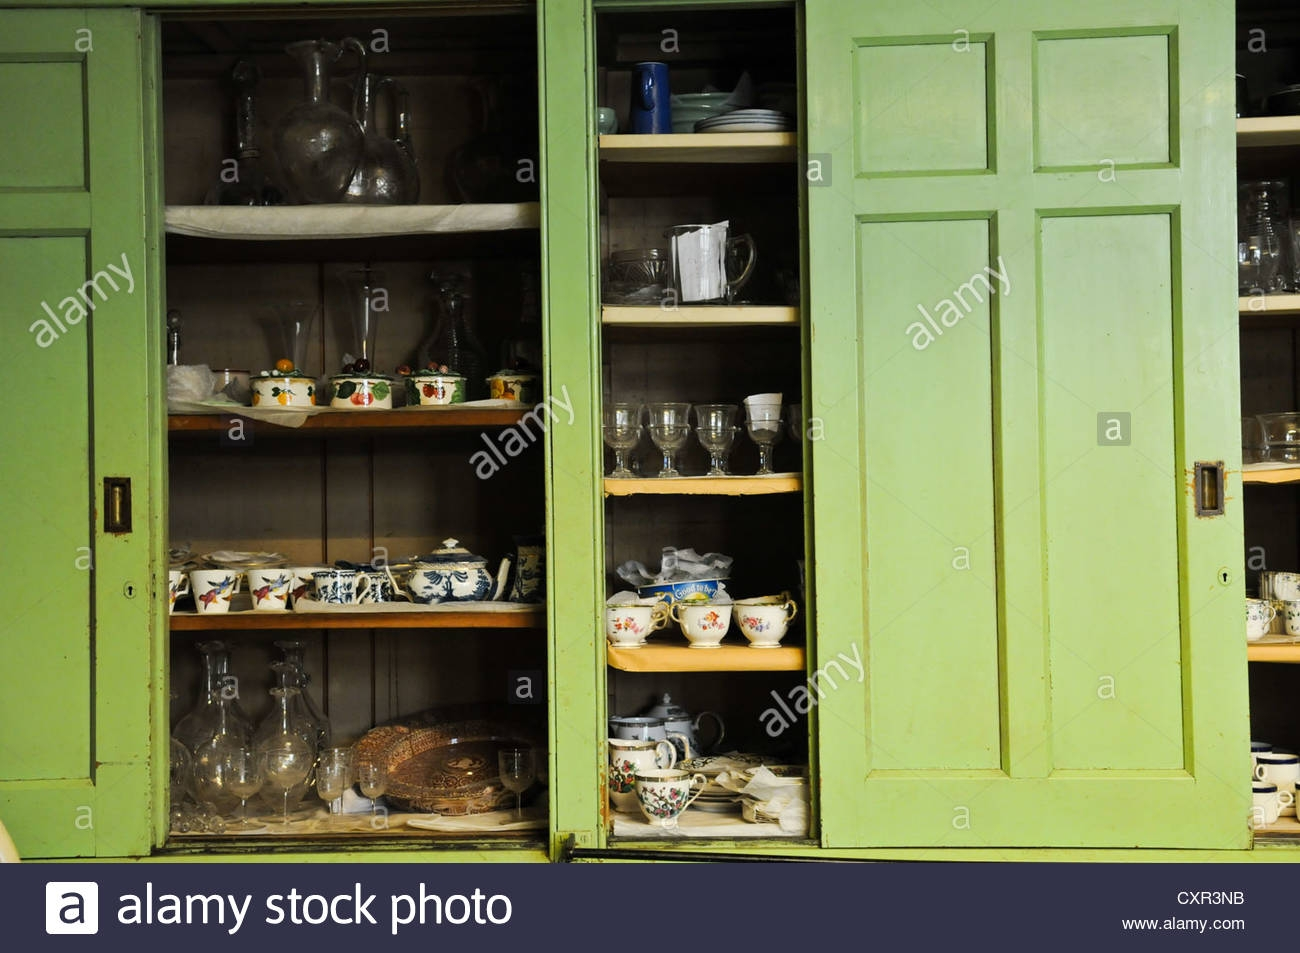 15 Photo of Large Cupboard With Shelves